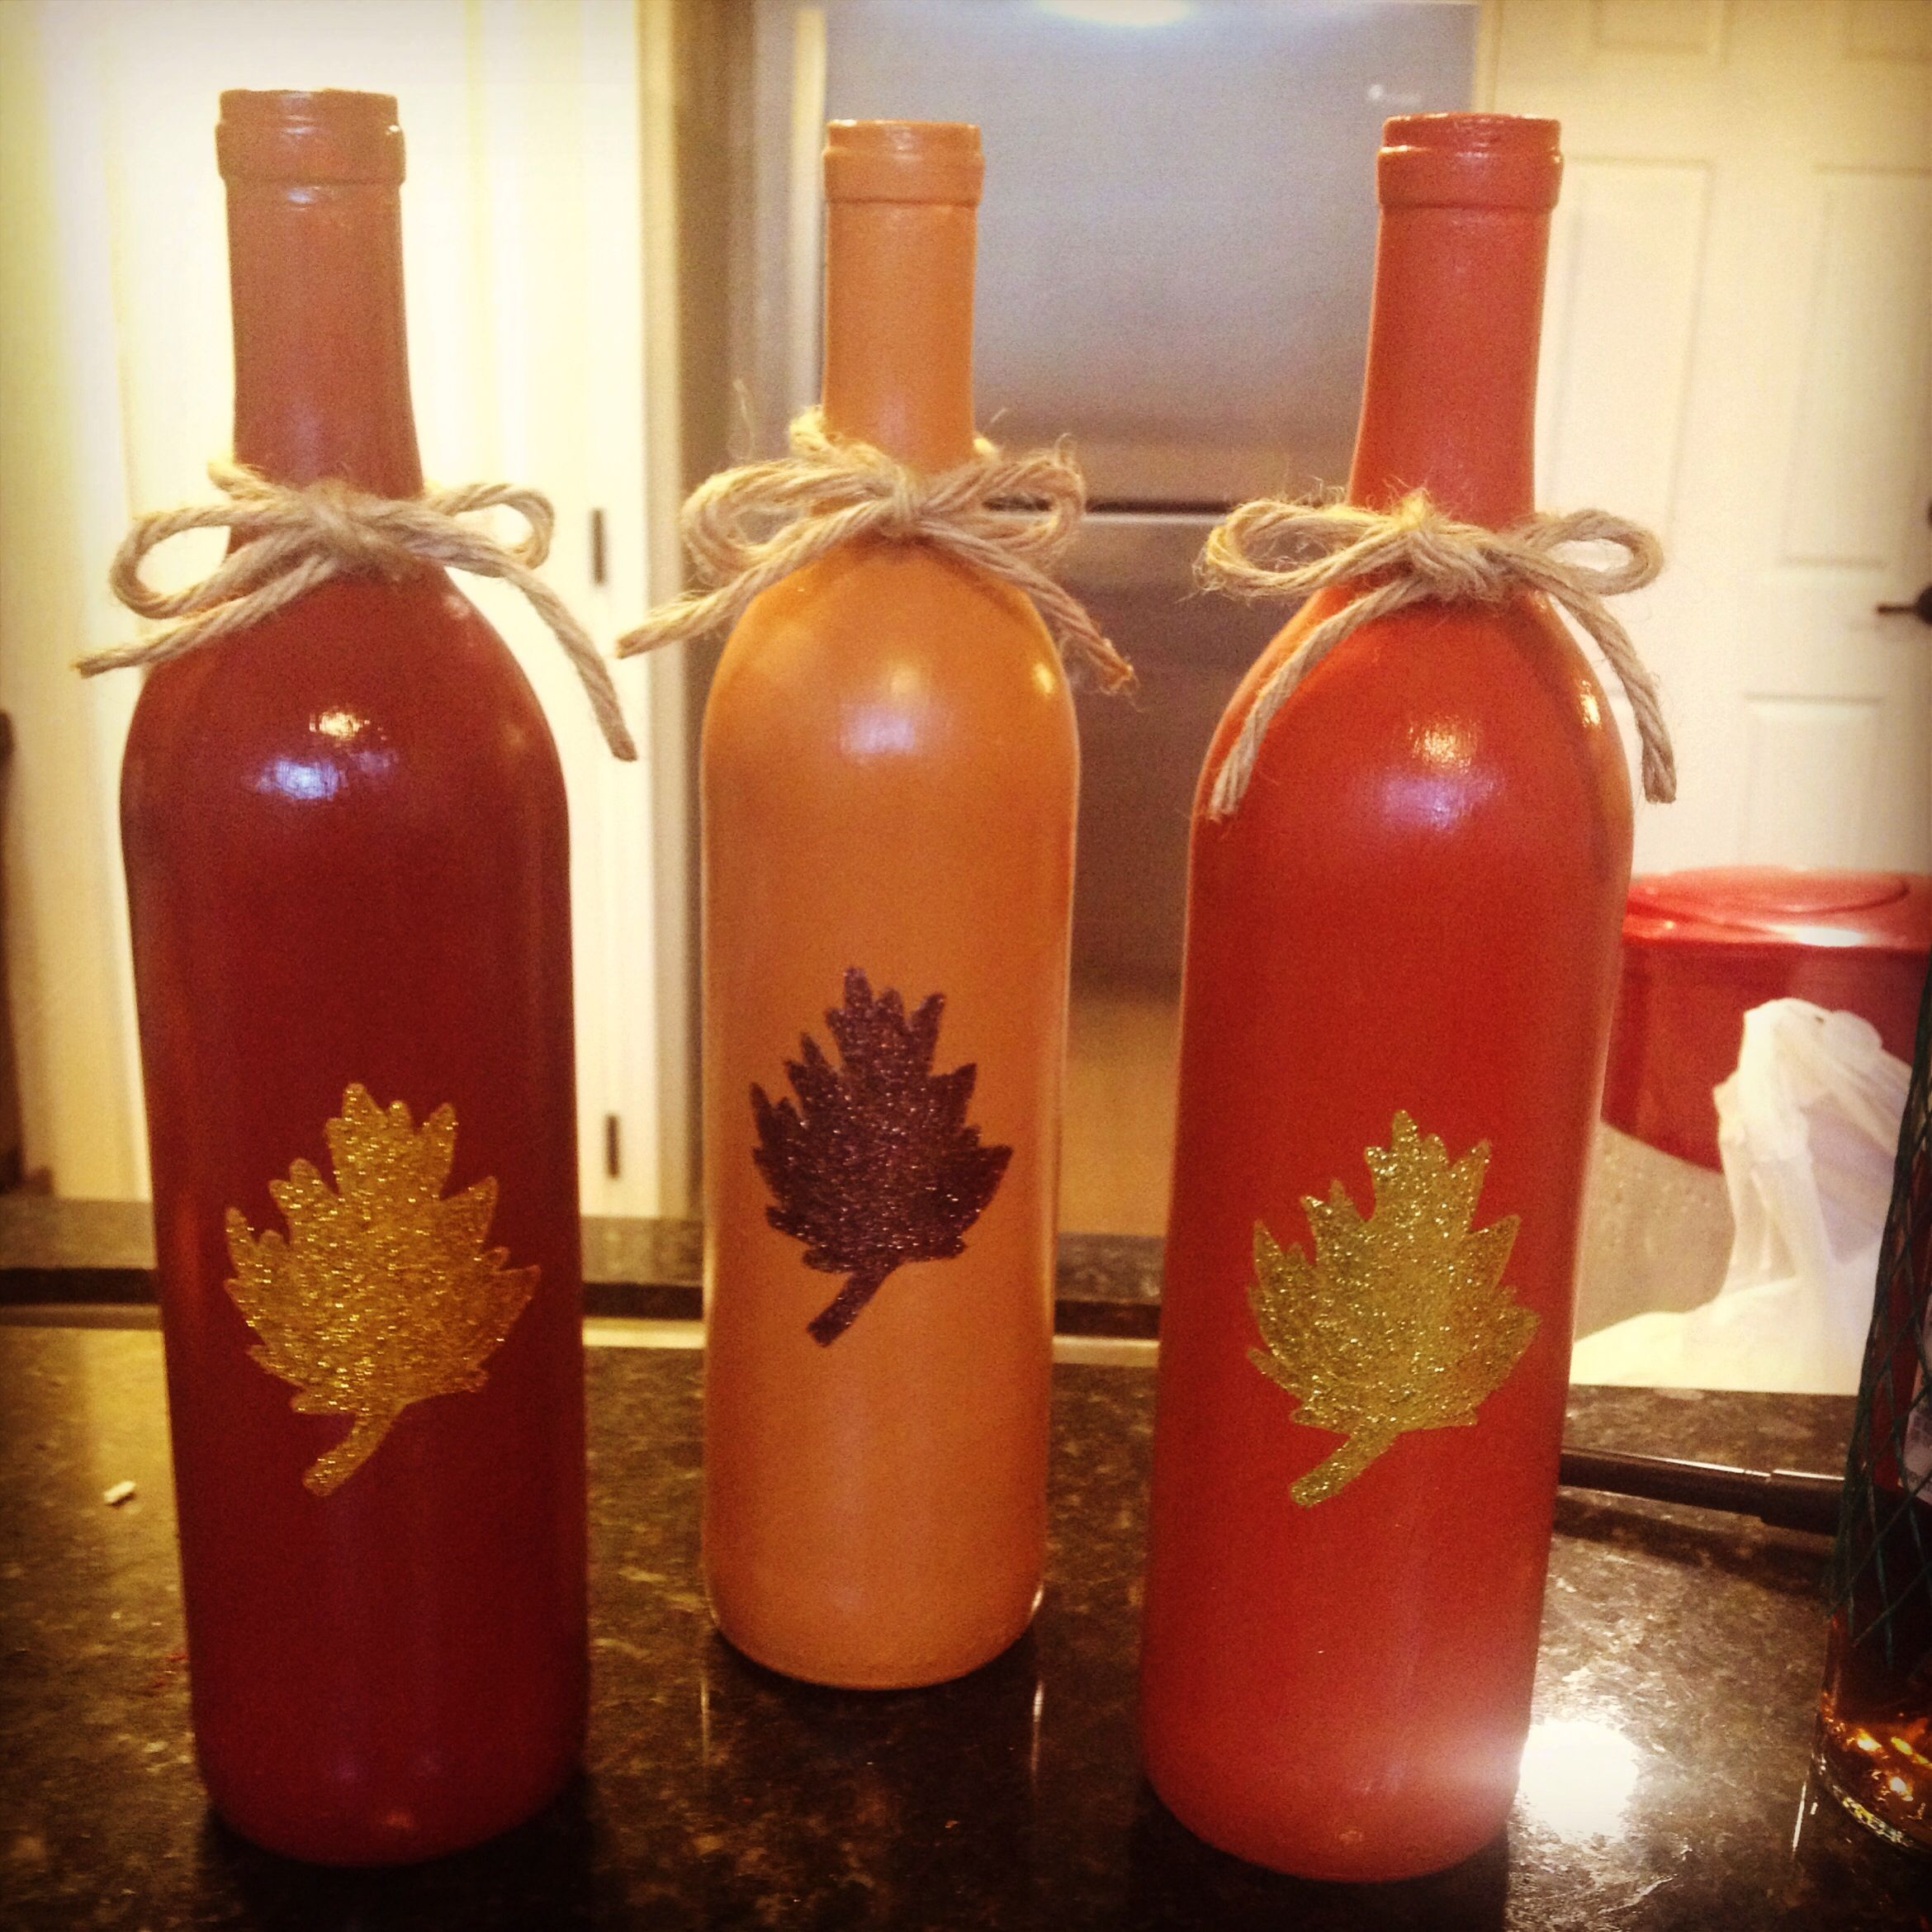 Most Recent Pictures Fall Decorating With Wine Bottles Thoughts These Decorations Are Simple And In 2020 Fall Wine Bottles Bottles Decoration Wine Bottle Diy Crafts